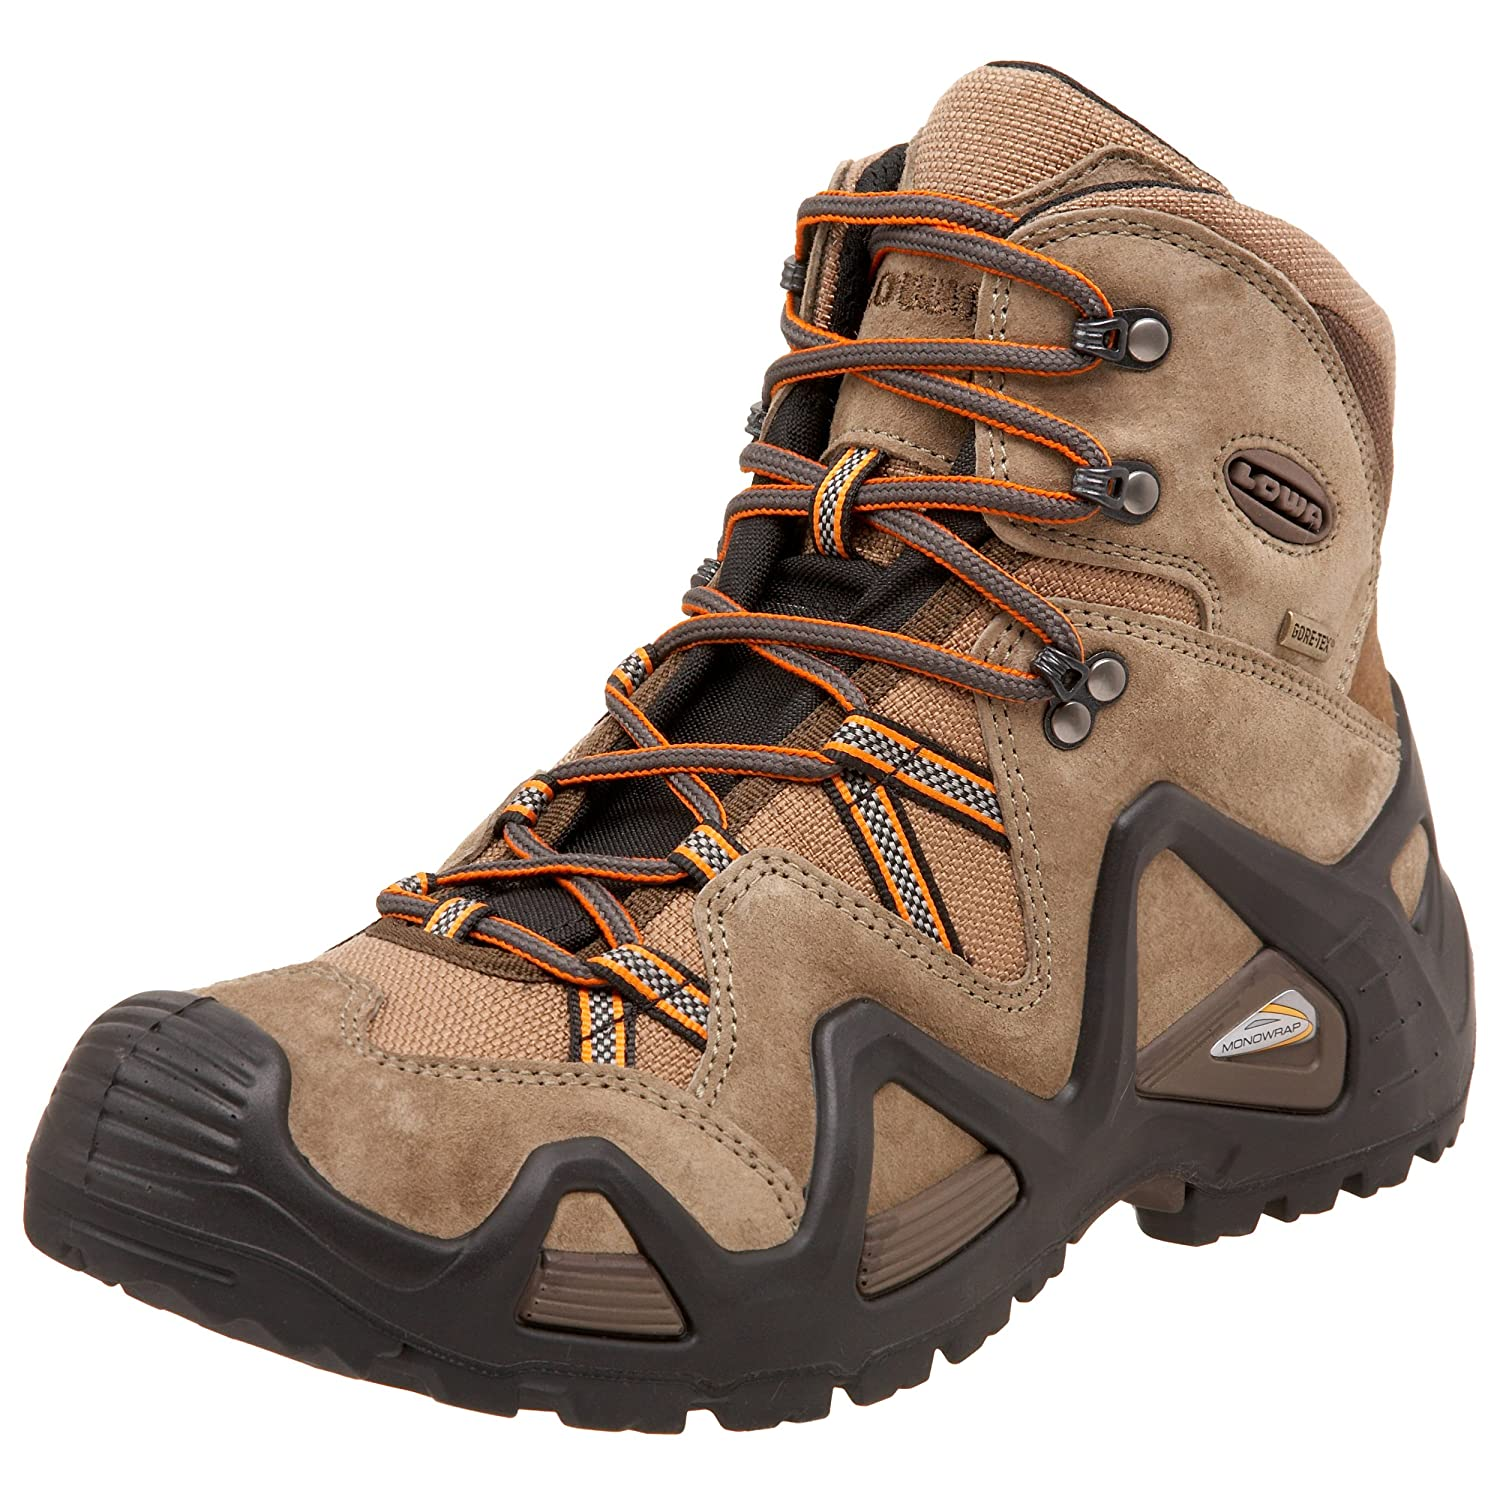 9e3c4e12802 Lowa Men's Zephyr GTX Mid Hiking Boot